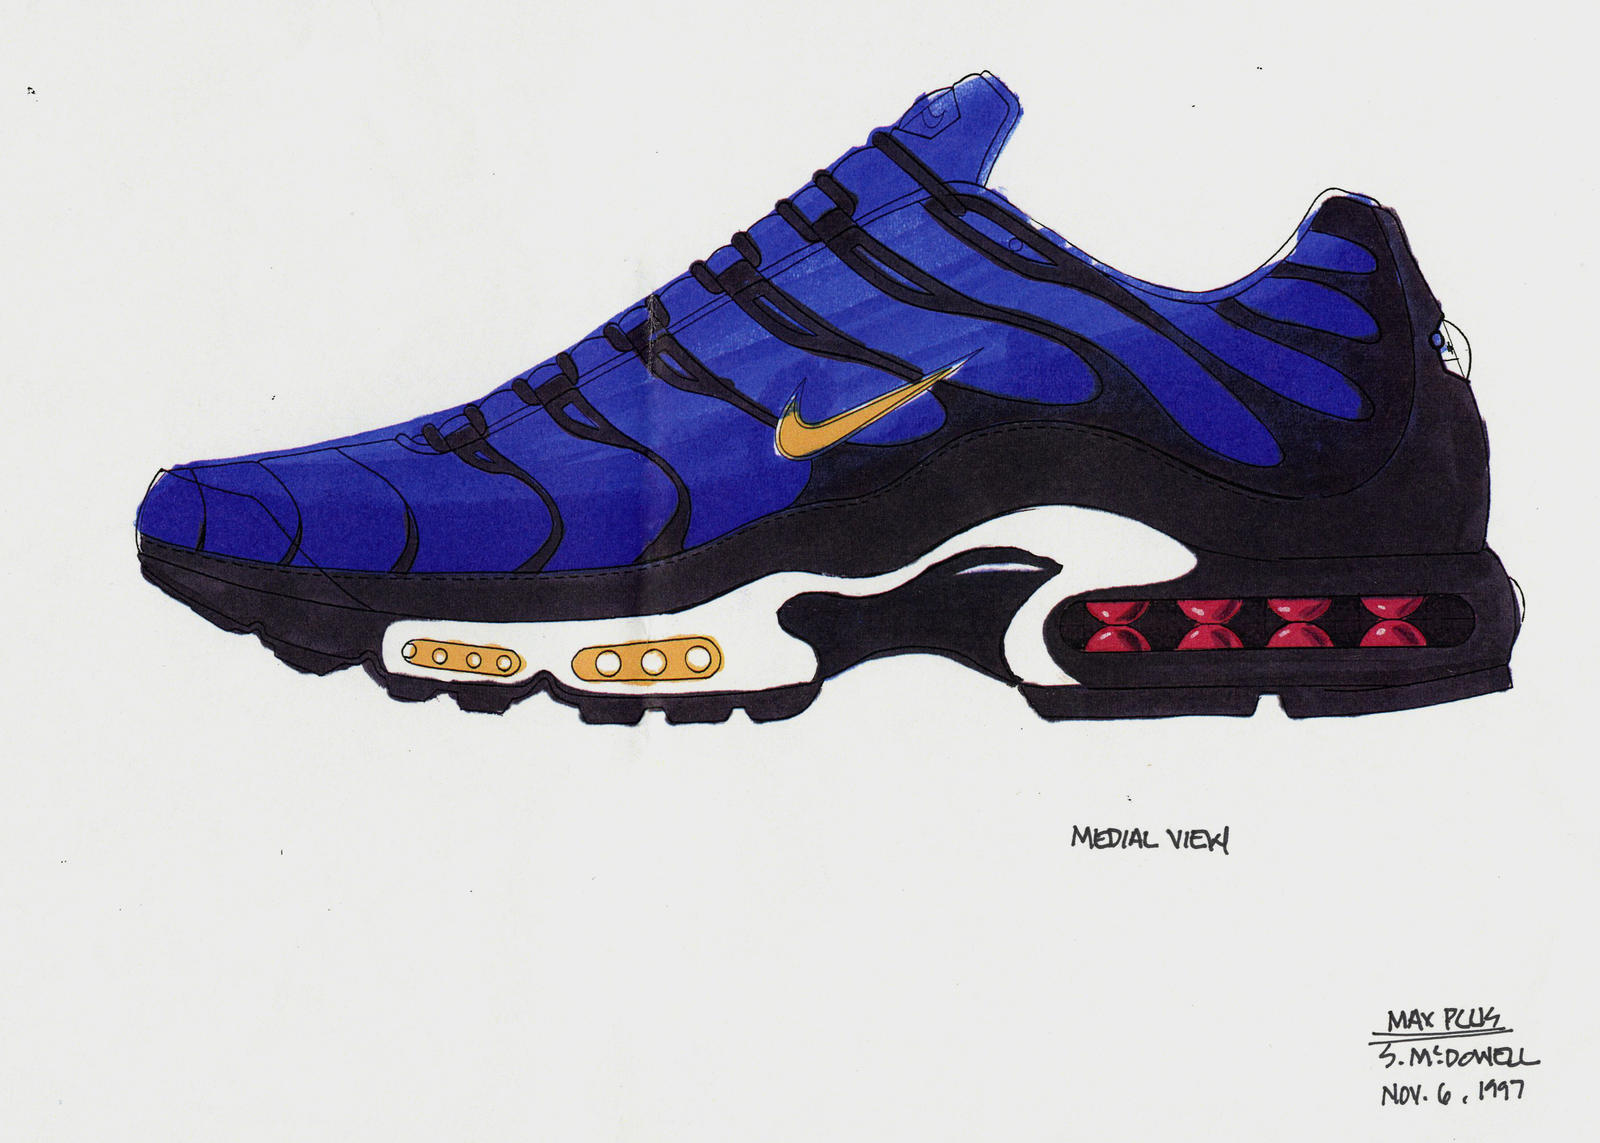 A Brief History of the Air Max Plus From its Designer Sean